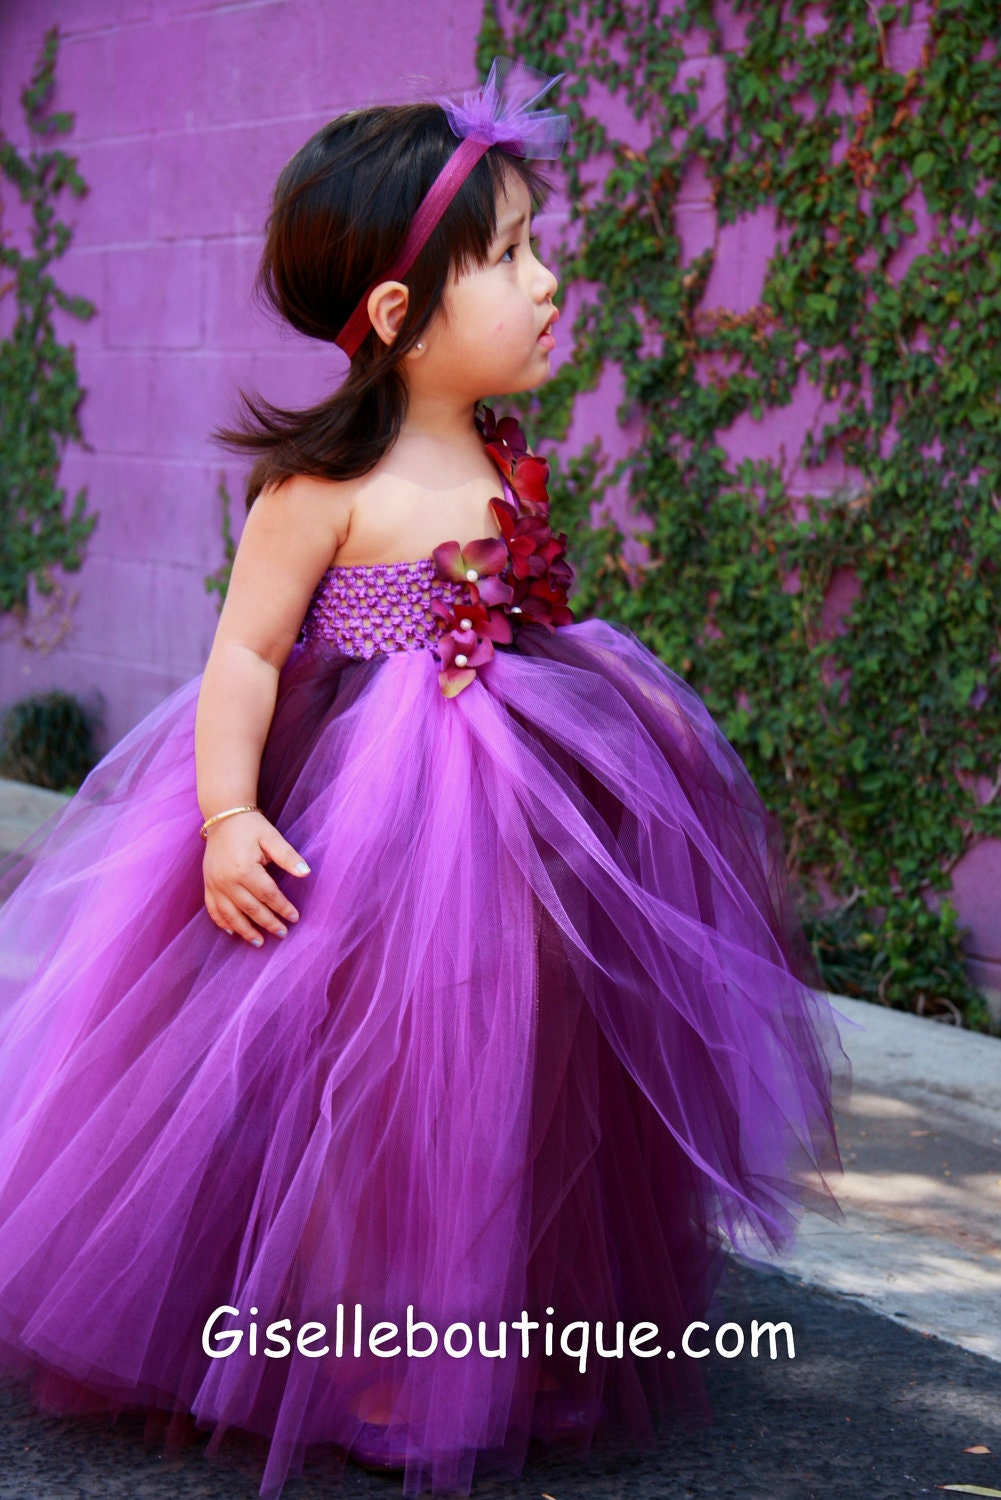 Limited Eggplant and Purple TuTu Dress. Wedding.Birthday.Flower Girl Dress - giselleboutique